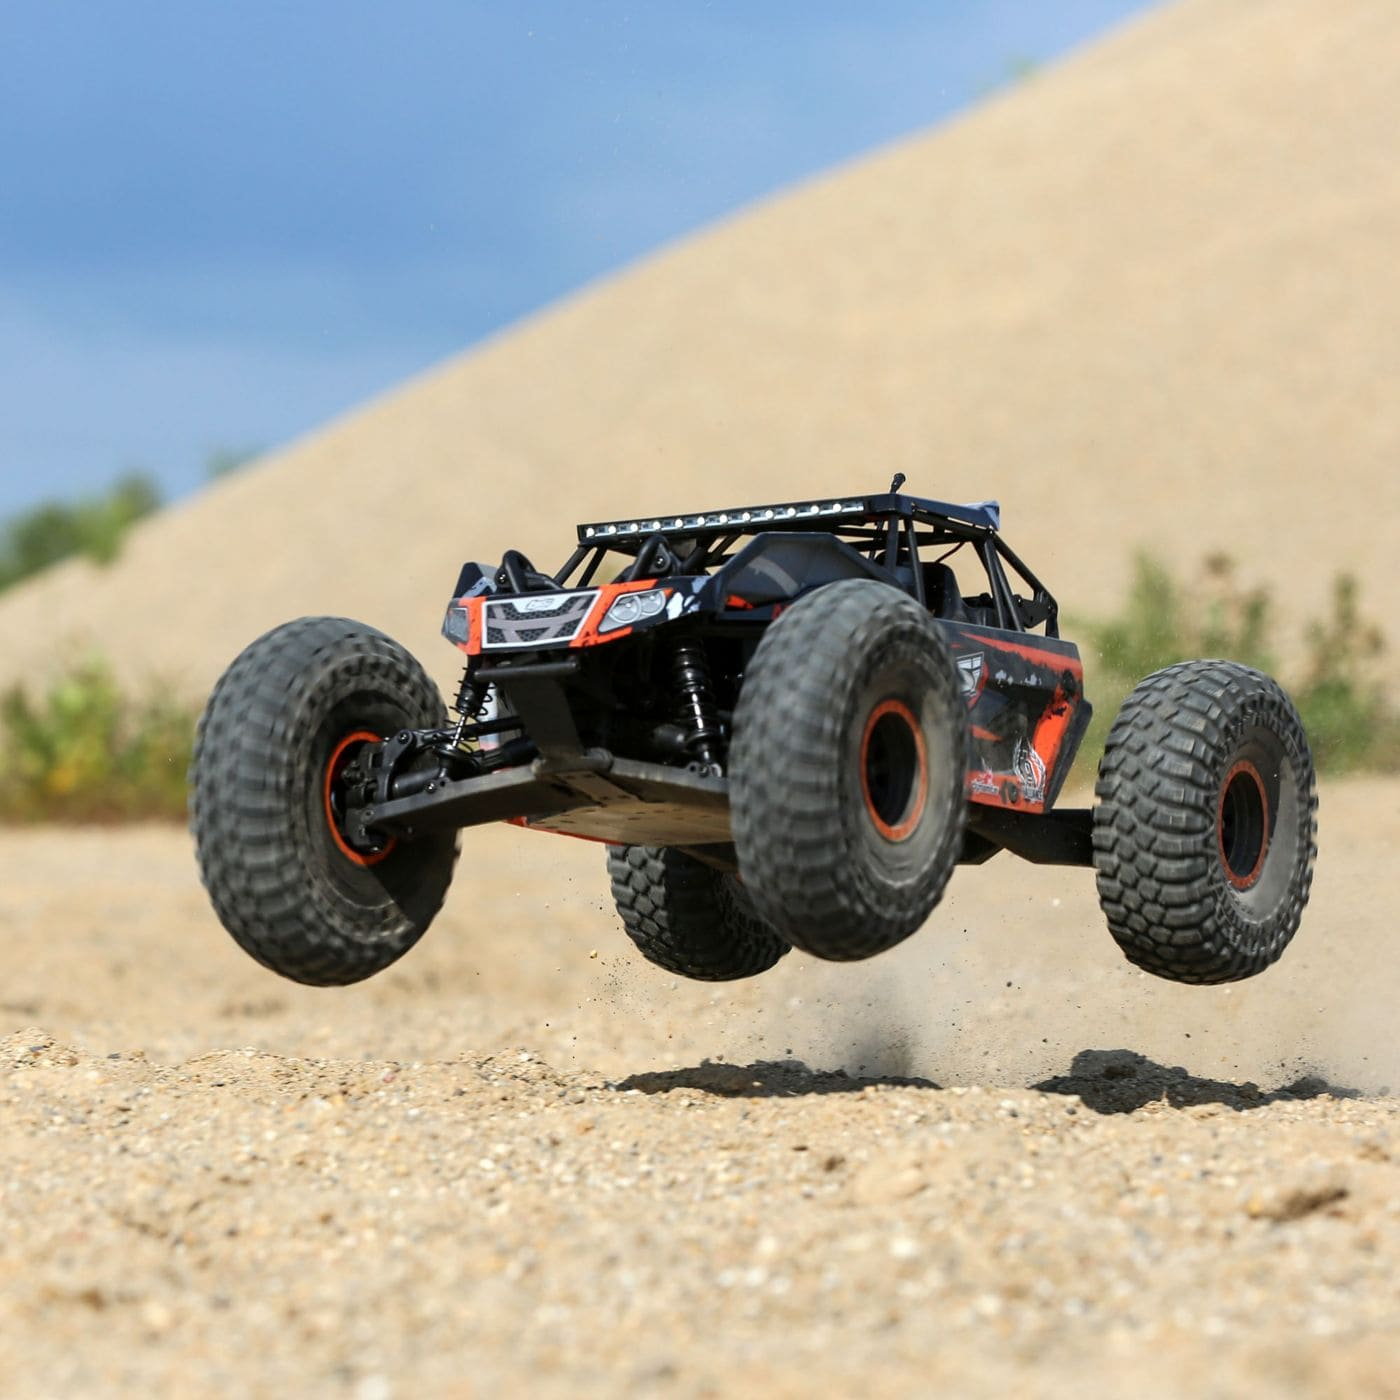 See it in Action: Losi's Rock Rey BND Rock Racer